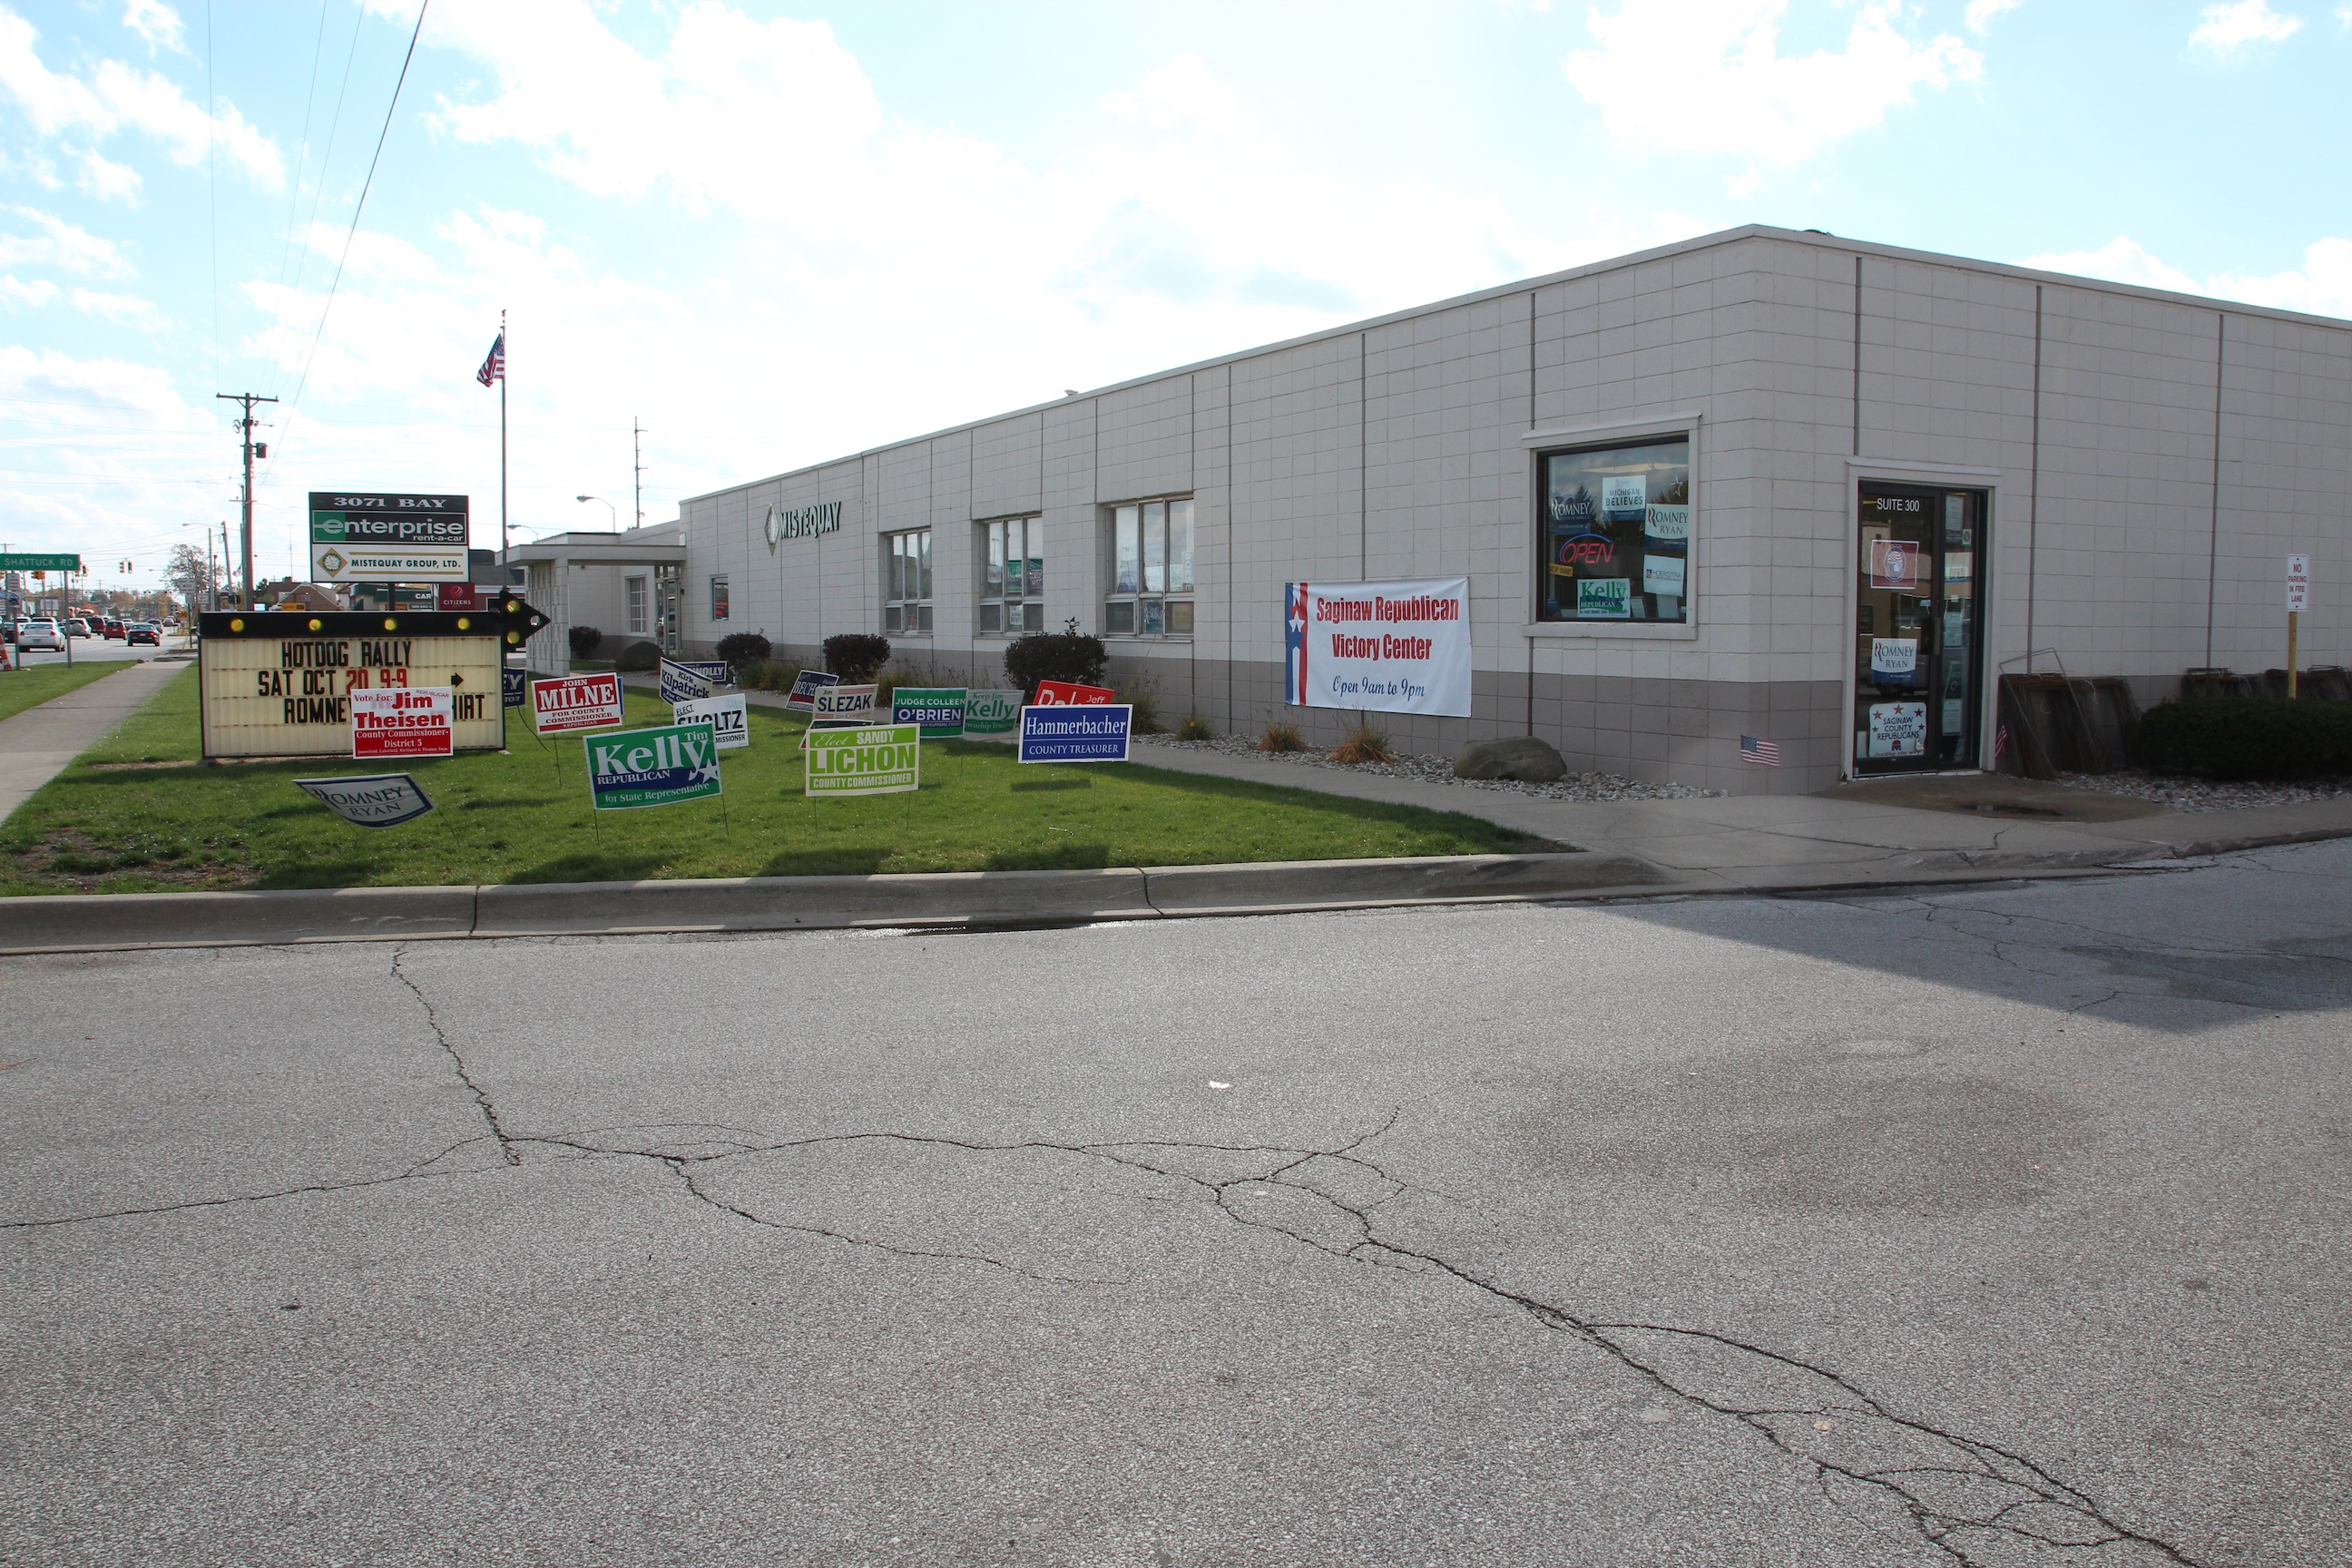 The Saginaw Republican Victory Center